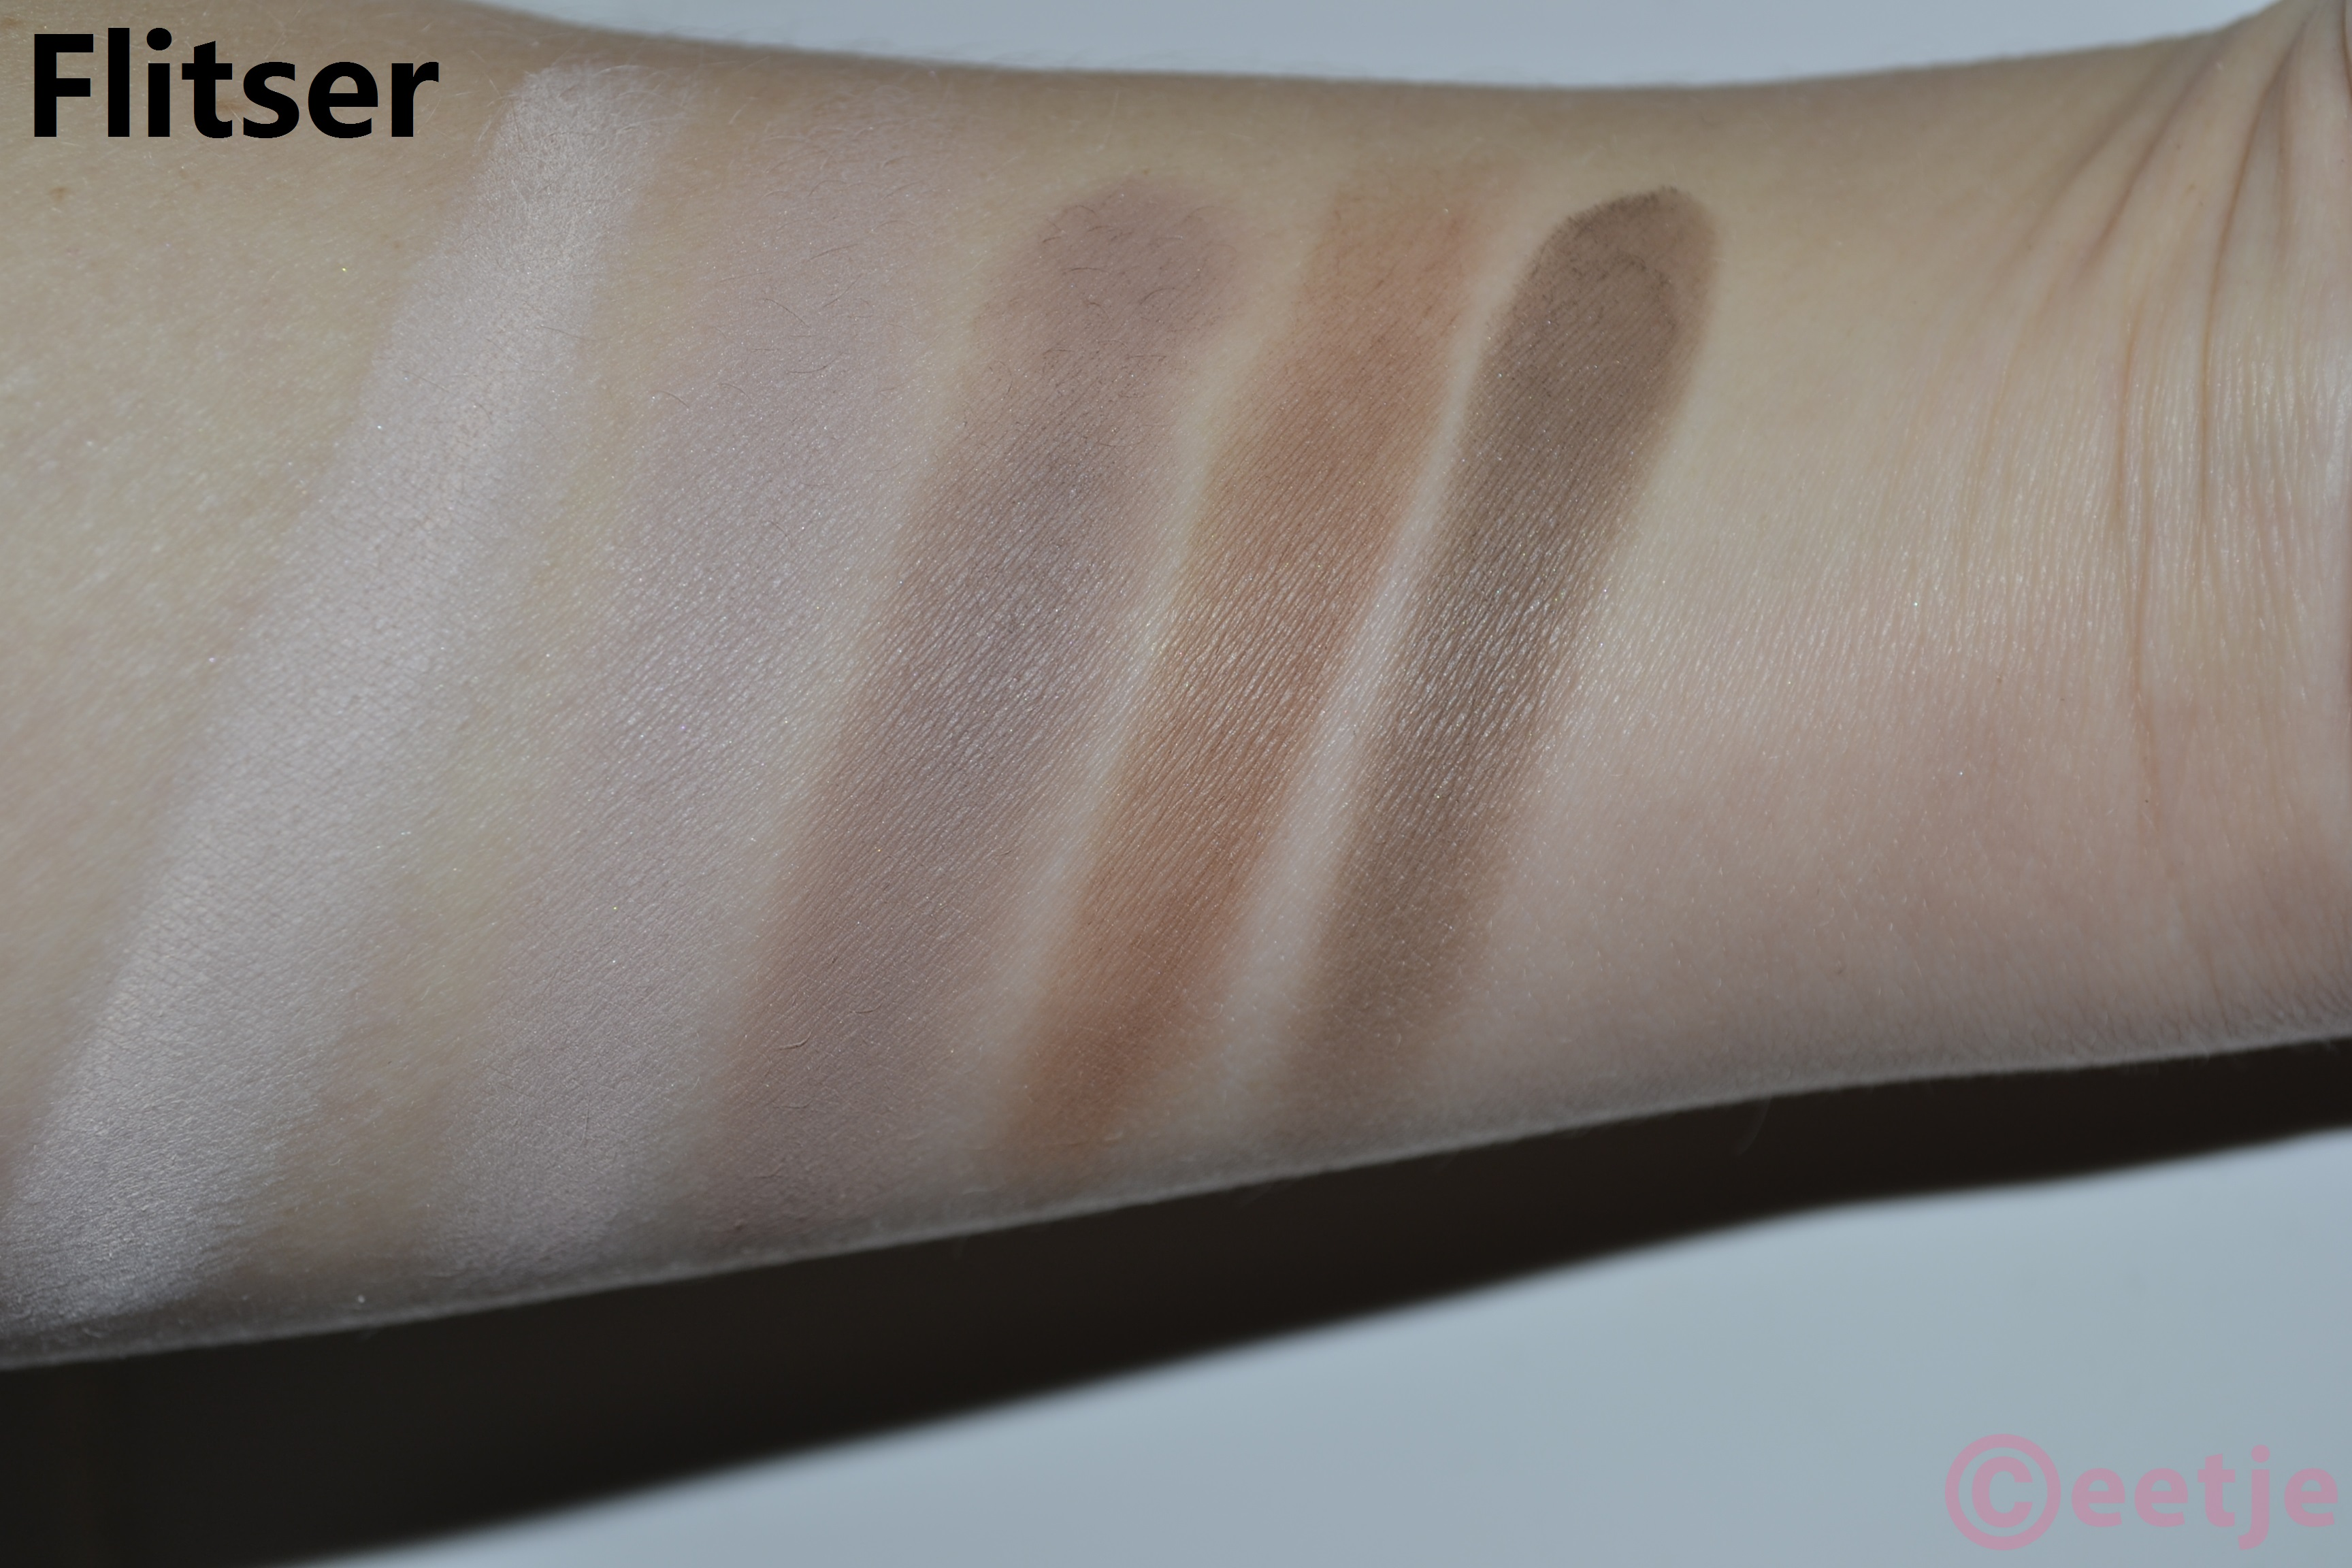 Swatch Flormar oogschaduw palette 07 eyeshadow flash flits